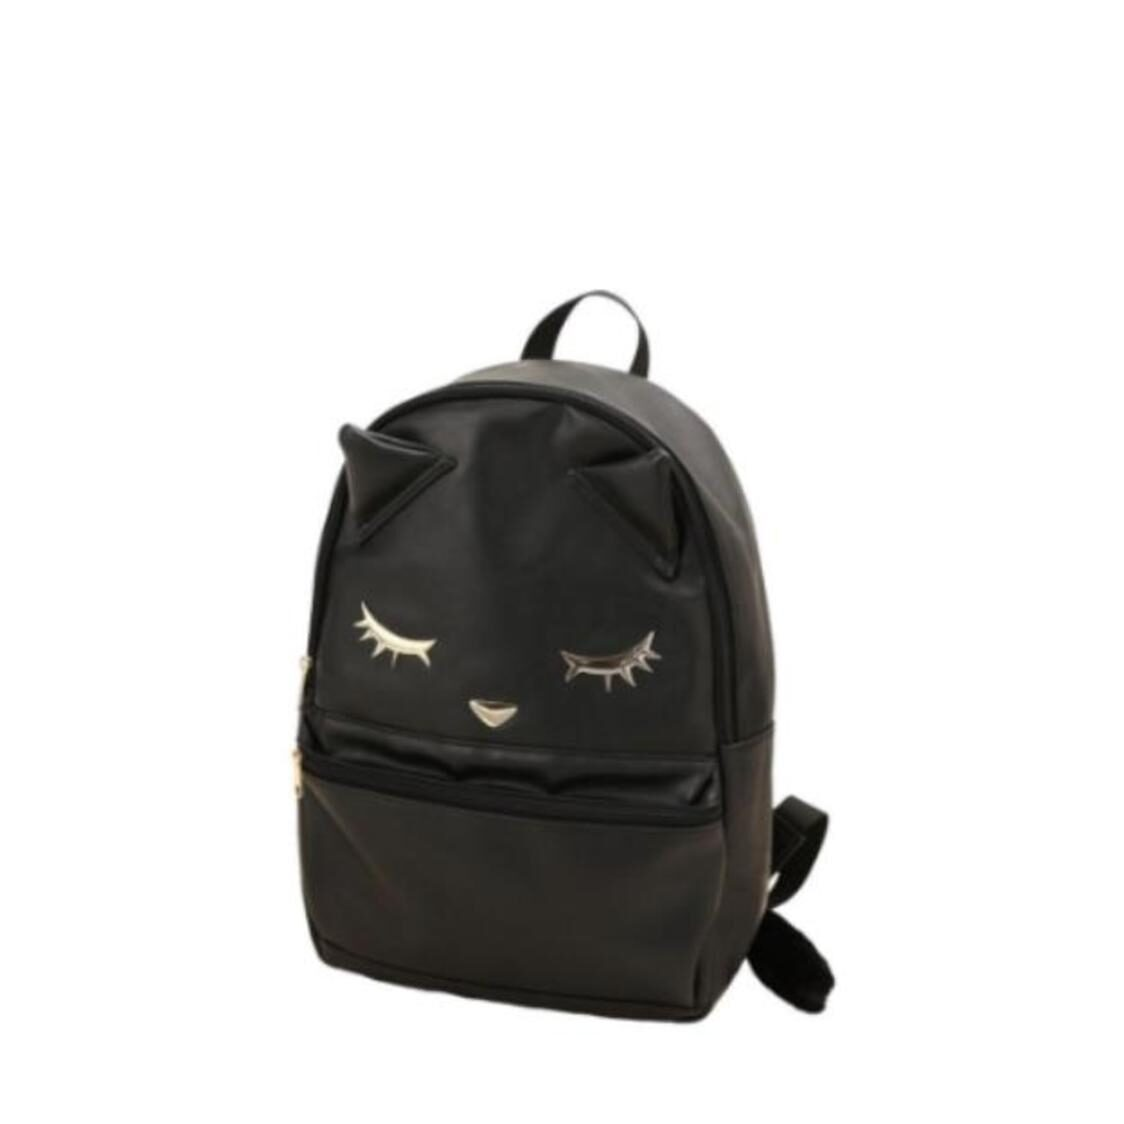 Backpack with Tail Black